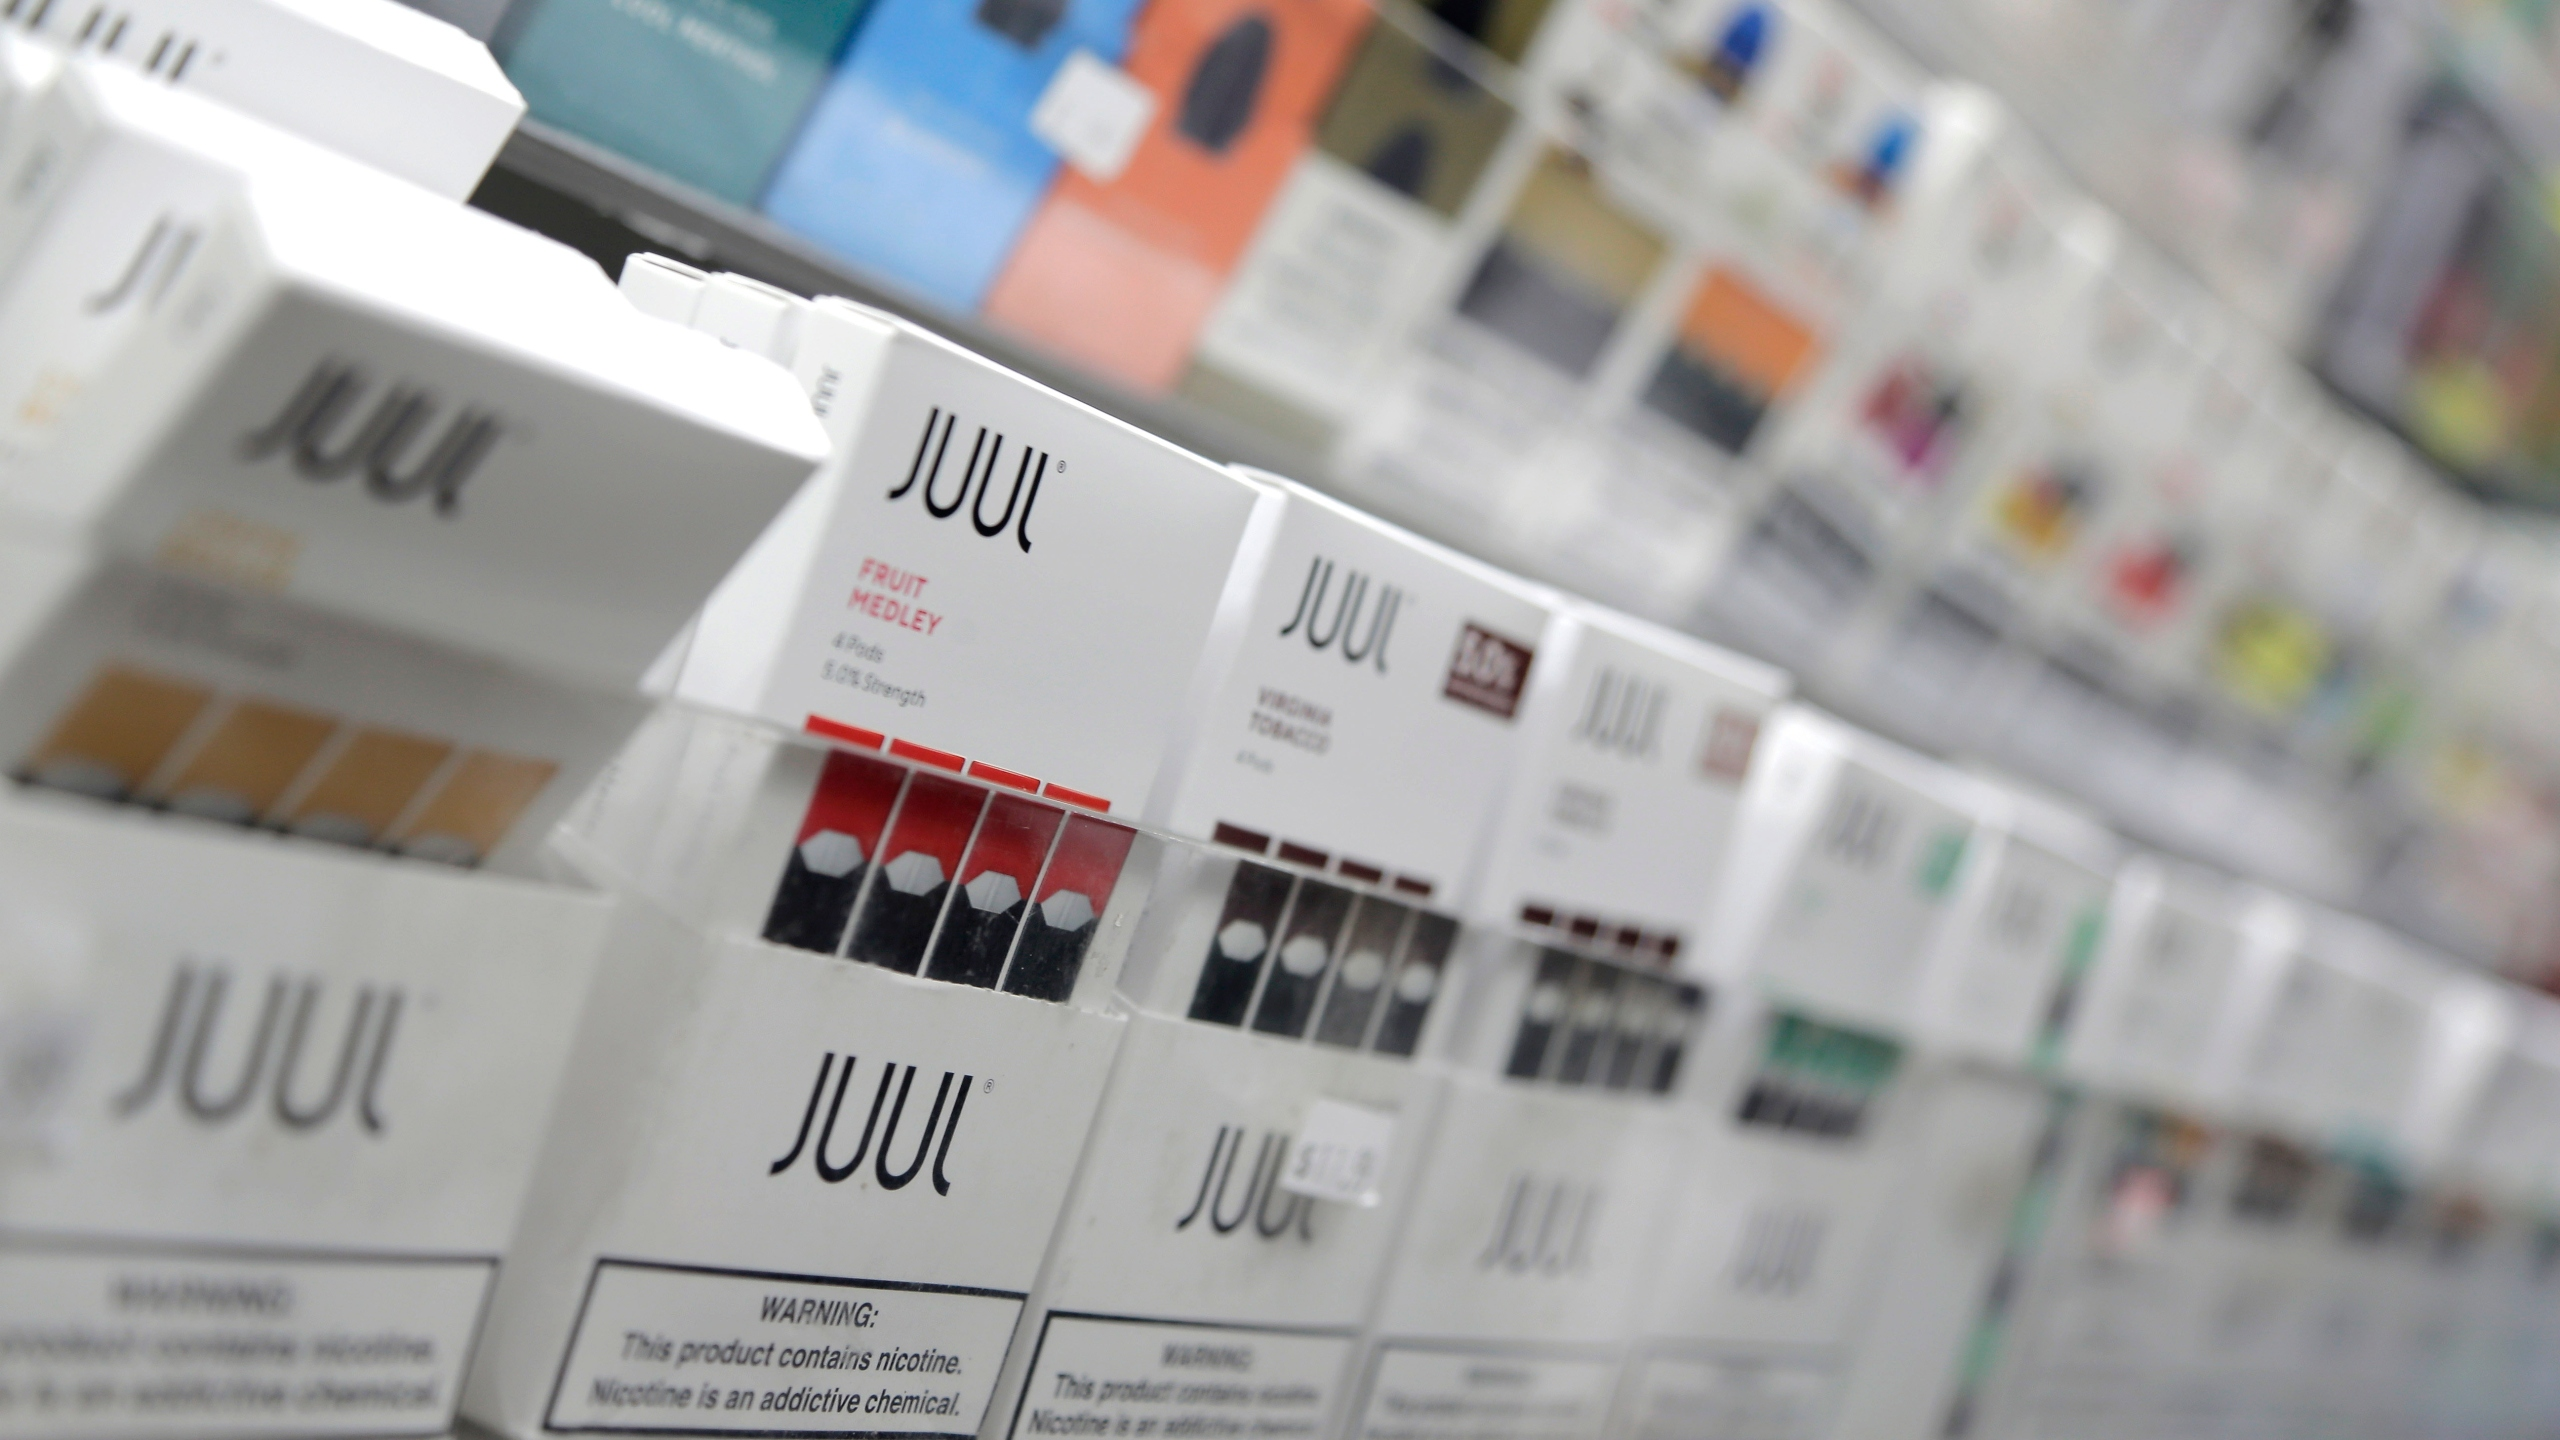 In this Dec. 20, 2018, file photo, Juul products are displayed at a smoke shop in New York. (AP Photo/Seth Wenig, File)